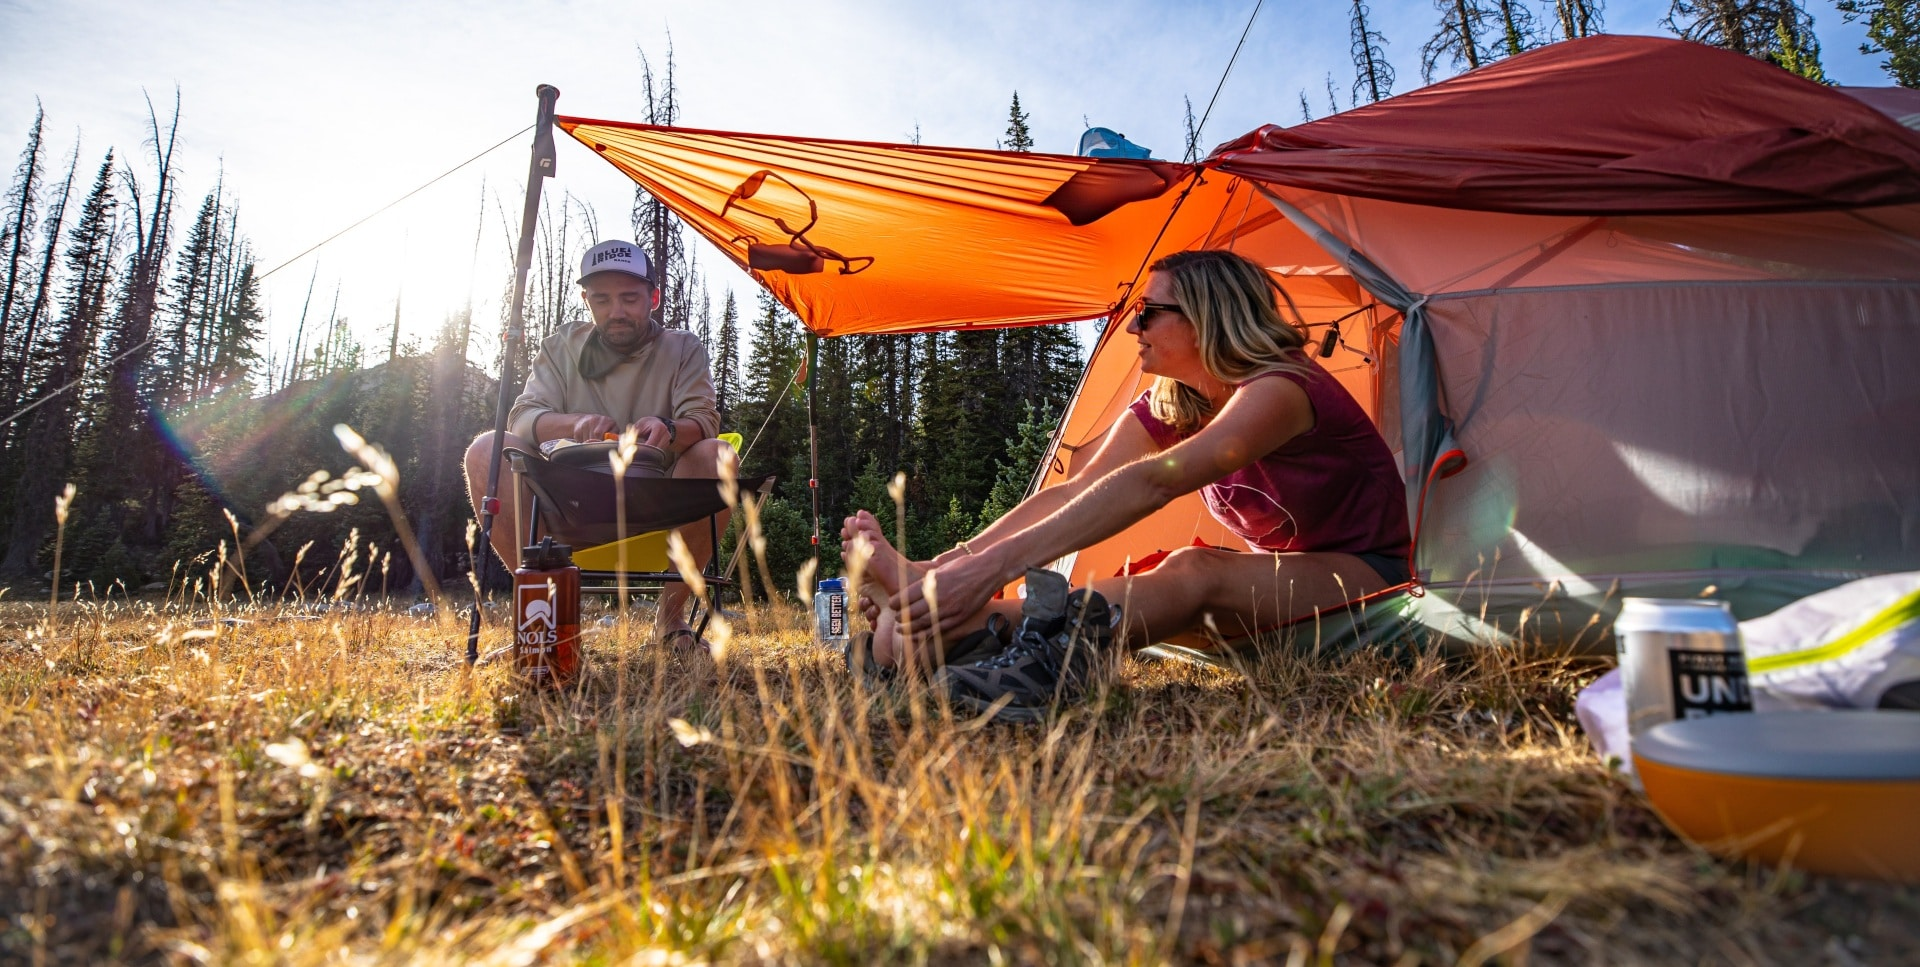 Two campers sat by their Big Agnes Copper Spur backpacking tent